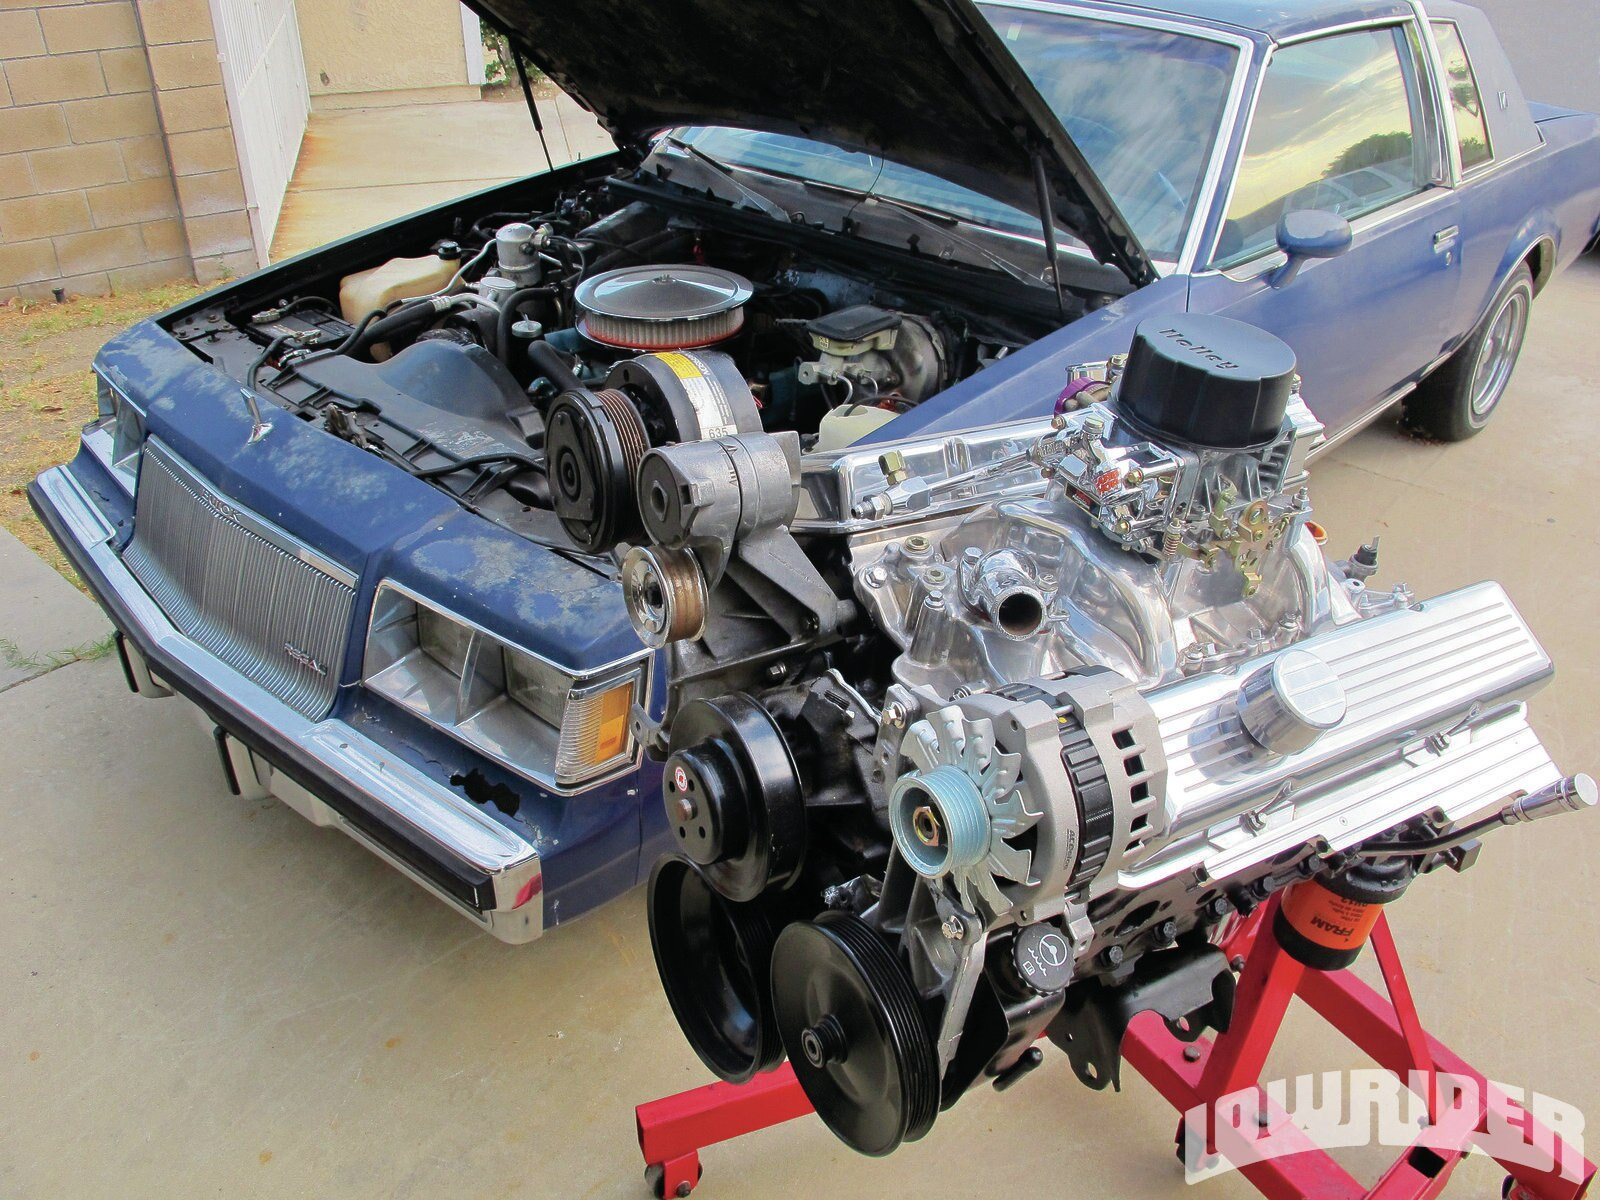 lrmp-1301-01-o-1984-buick-regal-engine-swap-small-block1